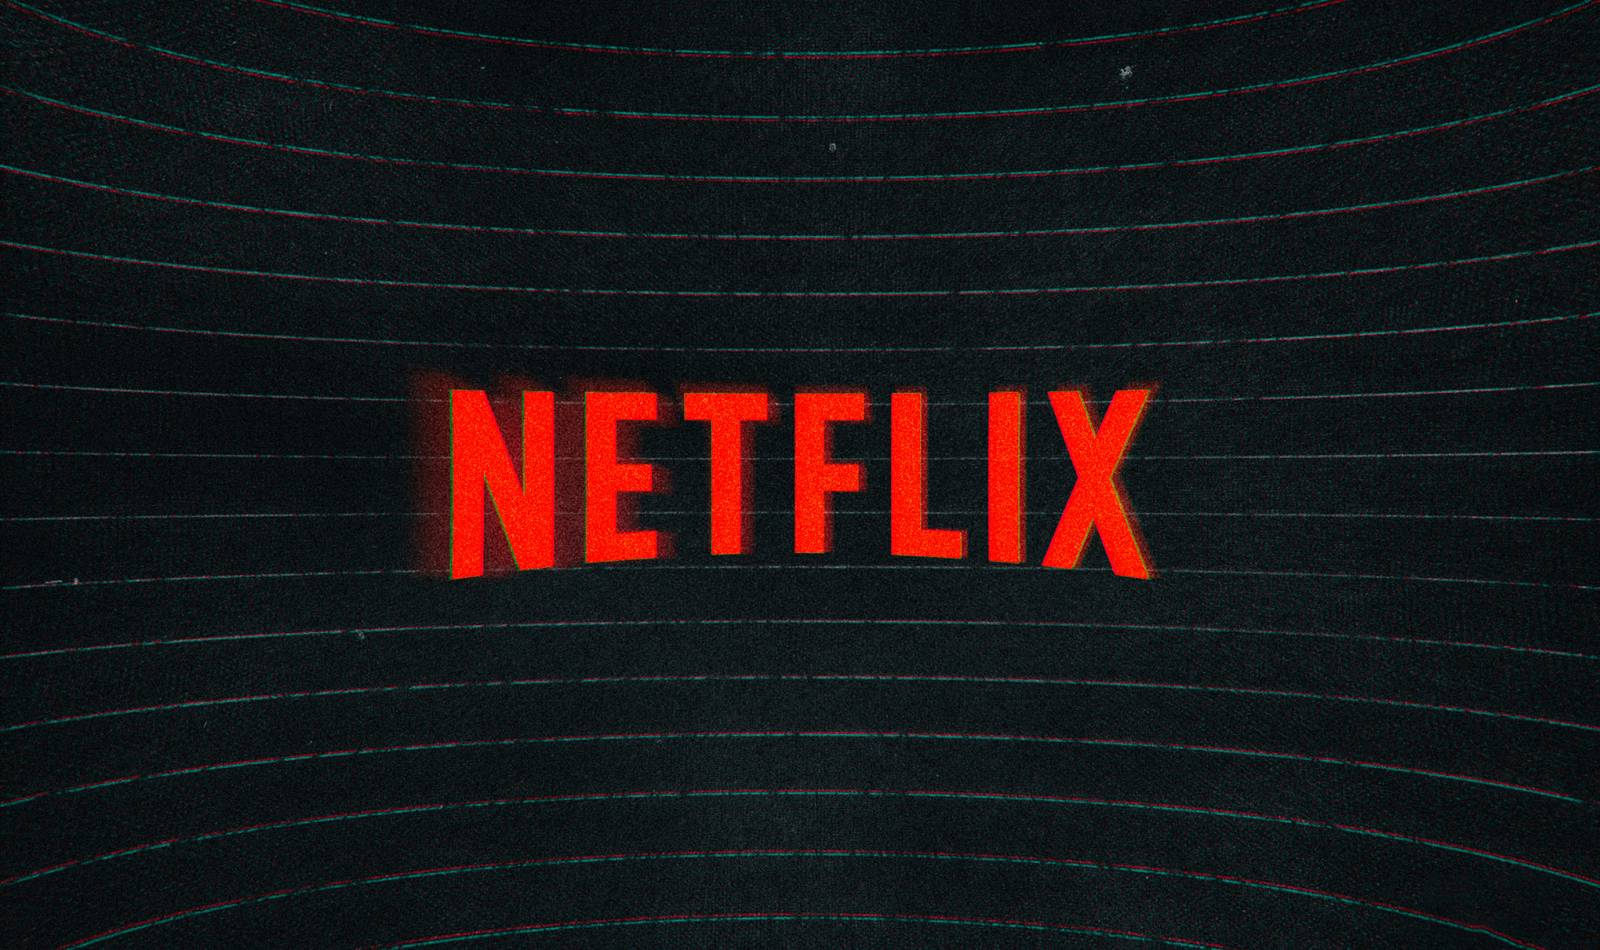 Netflix schimbare clienti supara hollywood